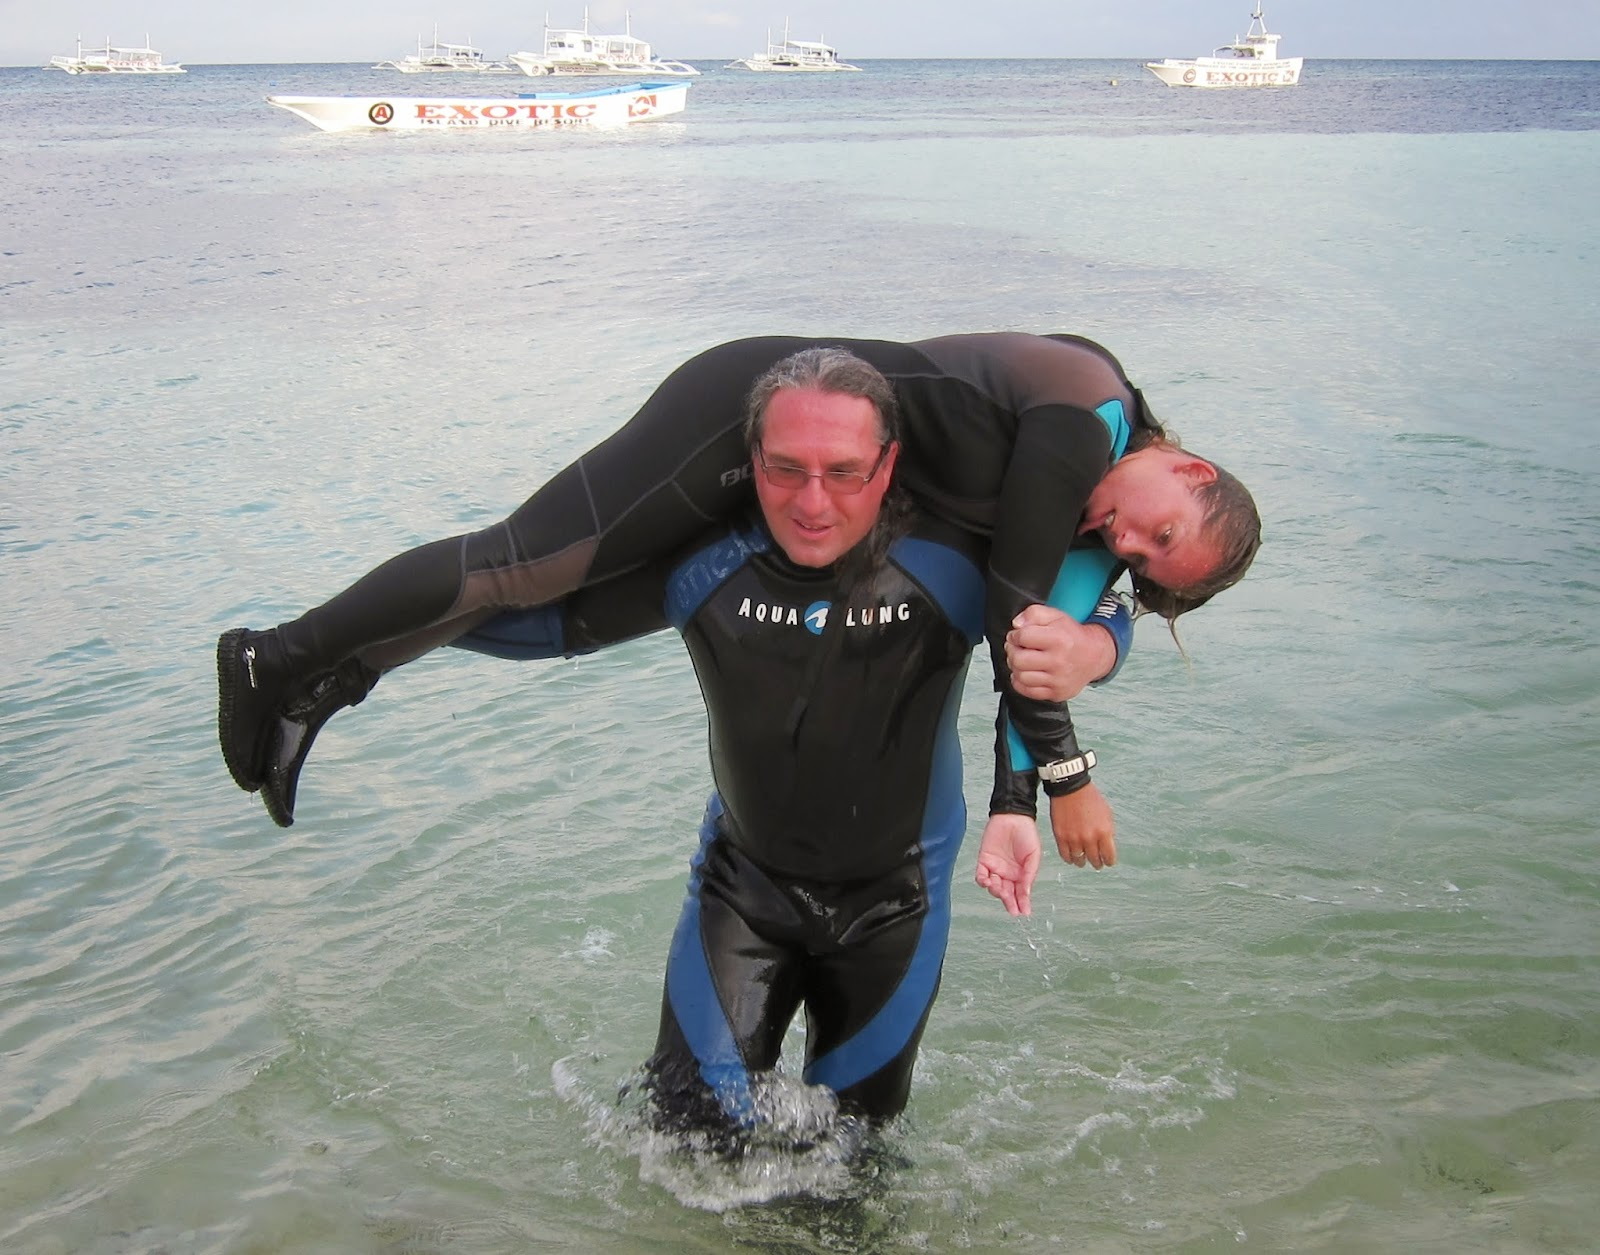 Manfred, PADI rescue diver student carries victim from the water in Malapascua Philippines